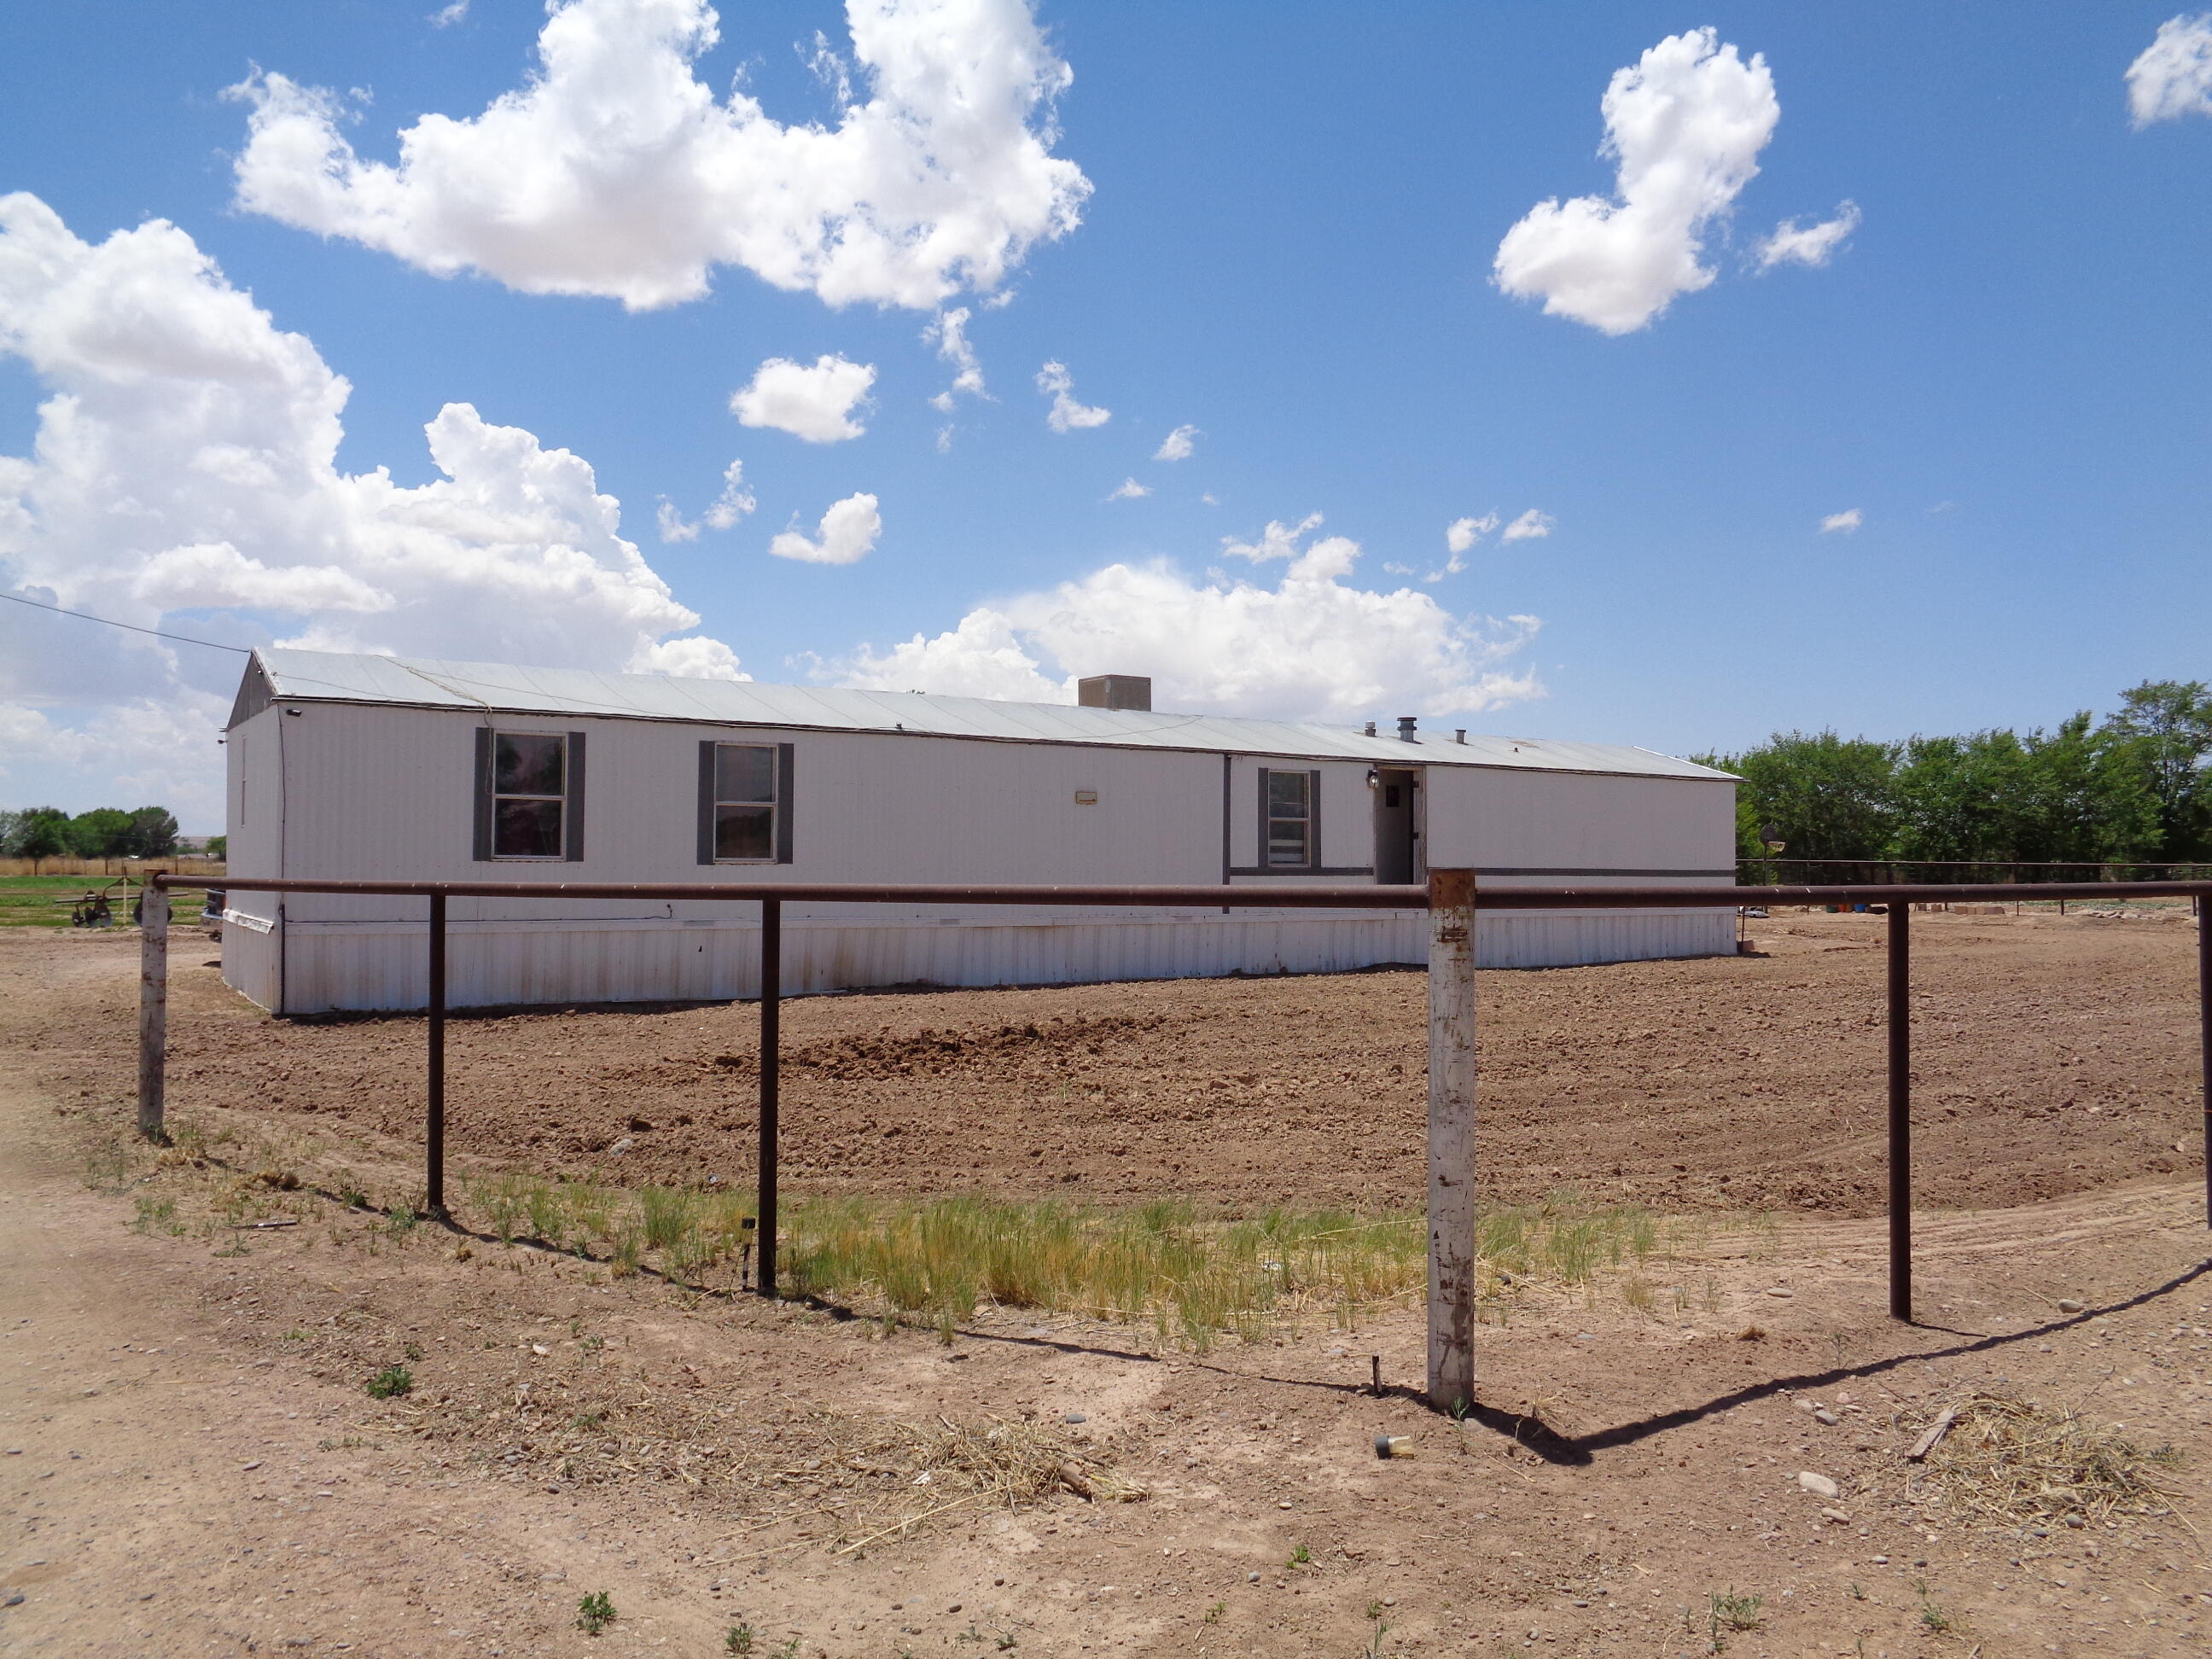 Located in a wonderful valley setting with 3 bedroom, 2 bath single-wide manufactued home on 3.98 acres.  Home has wood laminate flooring in the living, kitchen and dining area.  Split master suite.  Property is cut into 4 lots; 3.12 acres are ditch irrigated.  Also includes UPCs 1007034488478000000, 1007034500476000000 and 1007034510475000000.